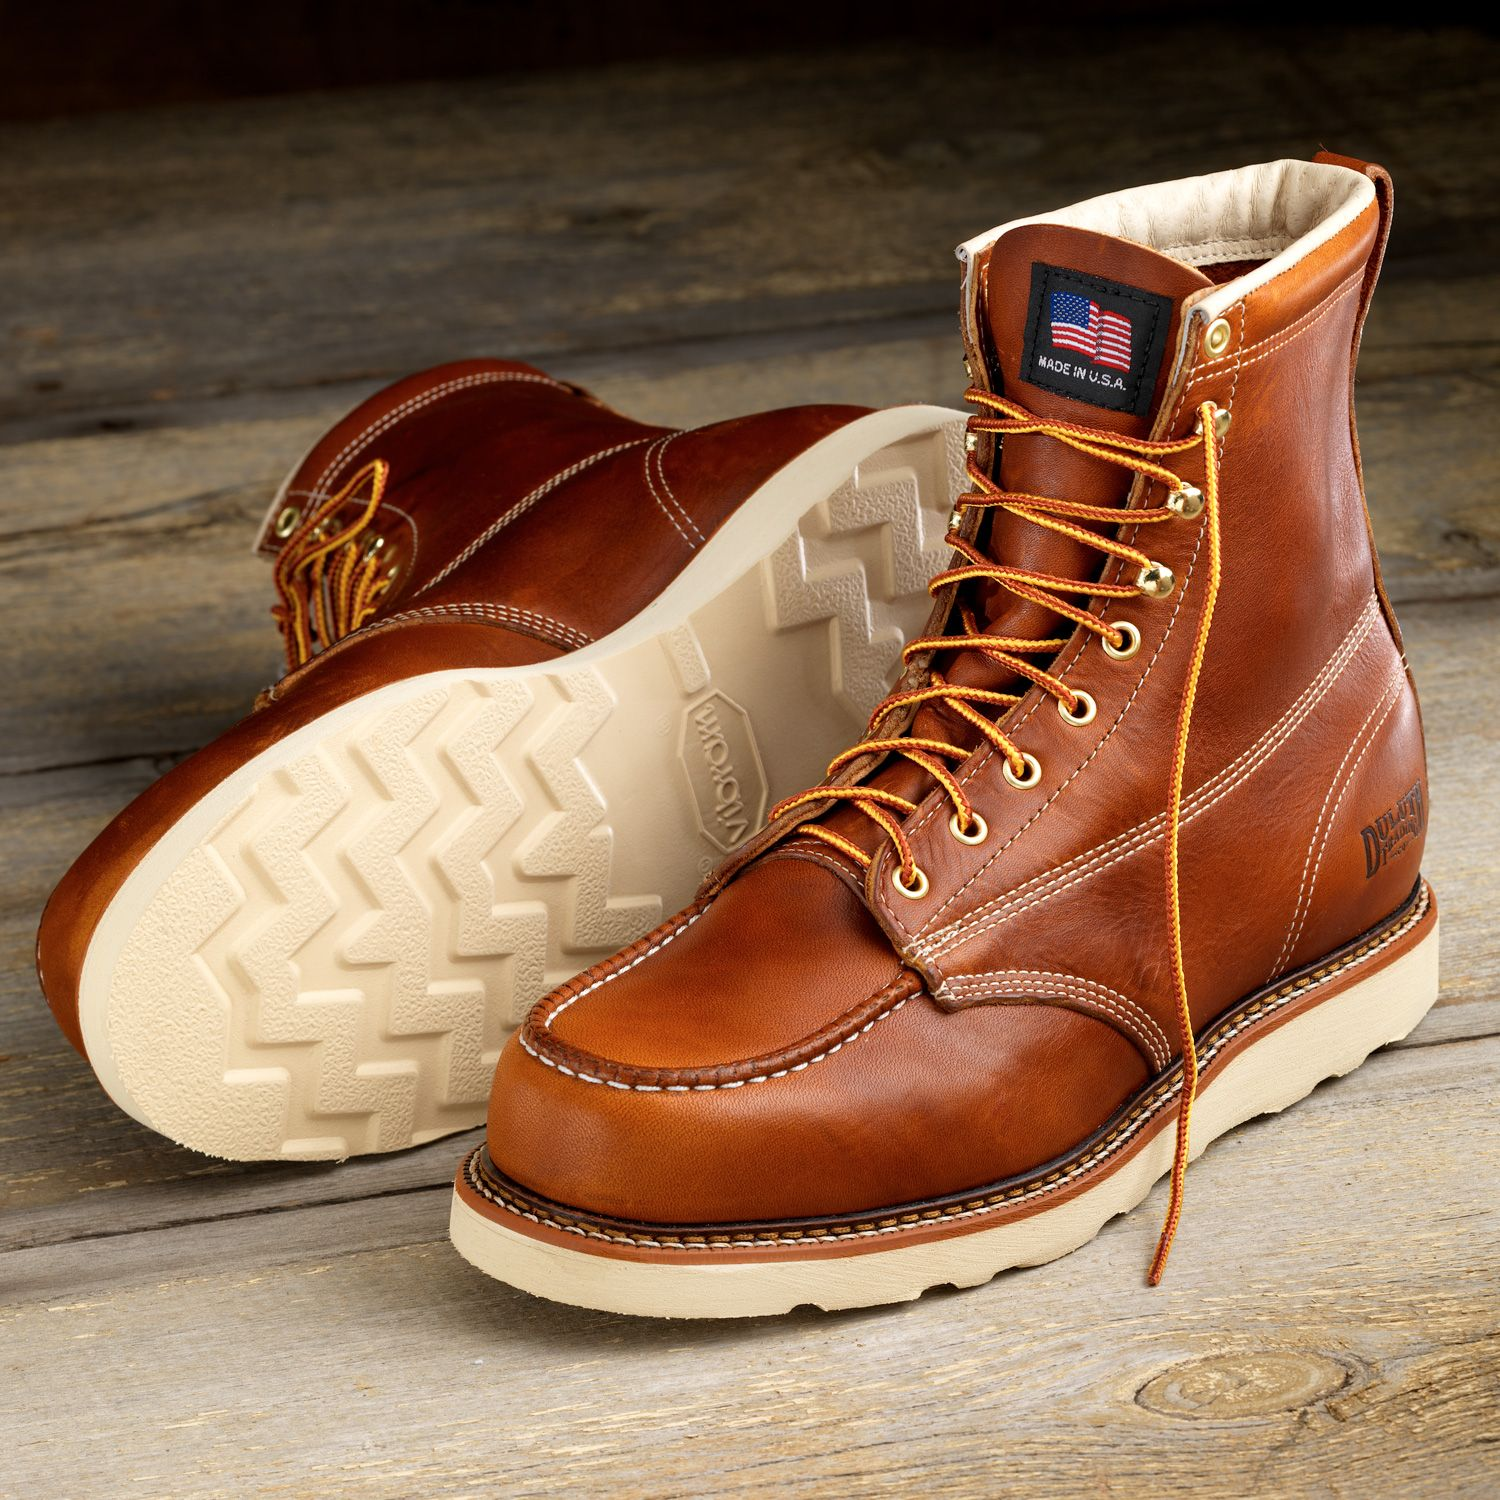 Where To Buy a Fashionable & High-Quality Moc Toe Boot For Working Men